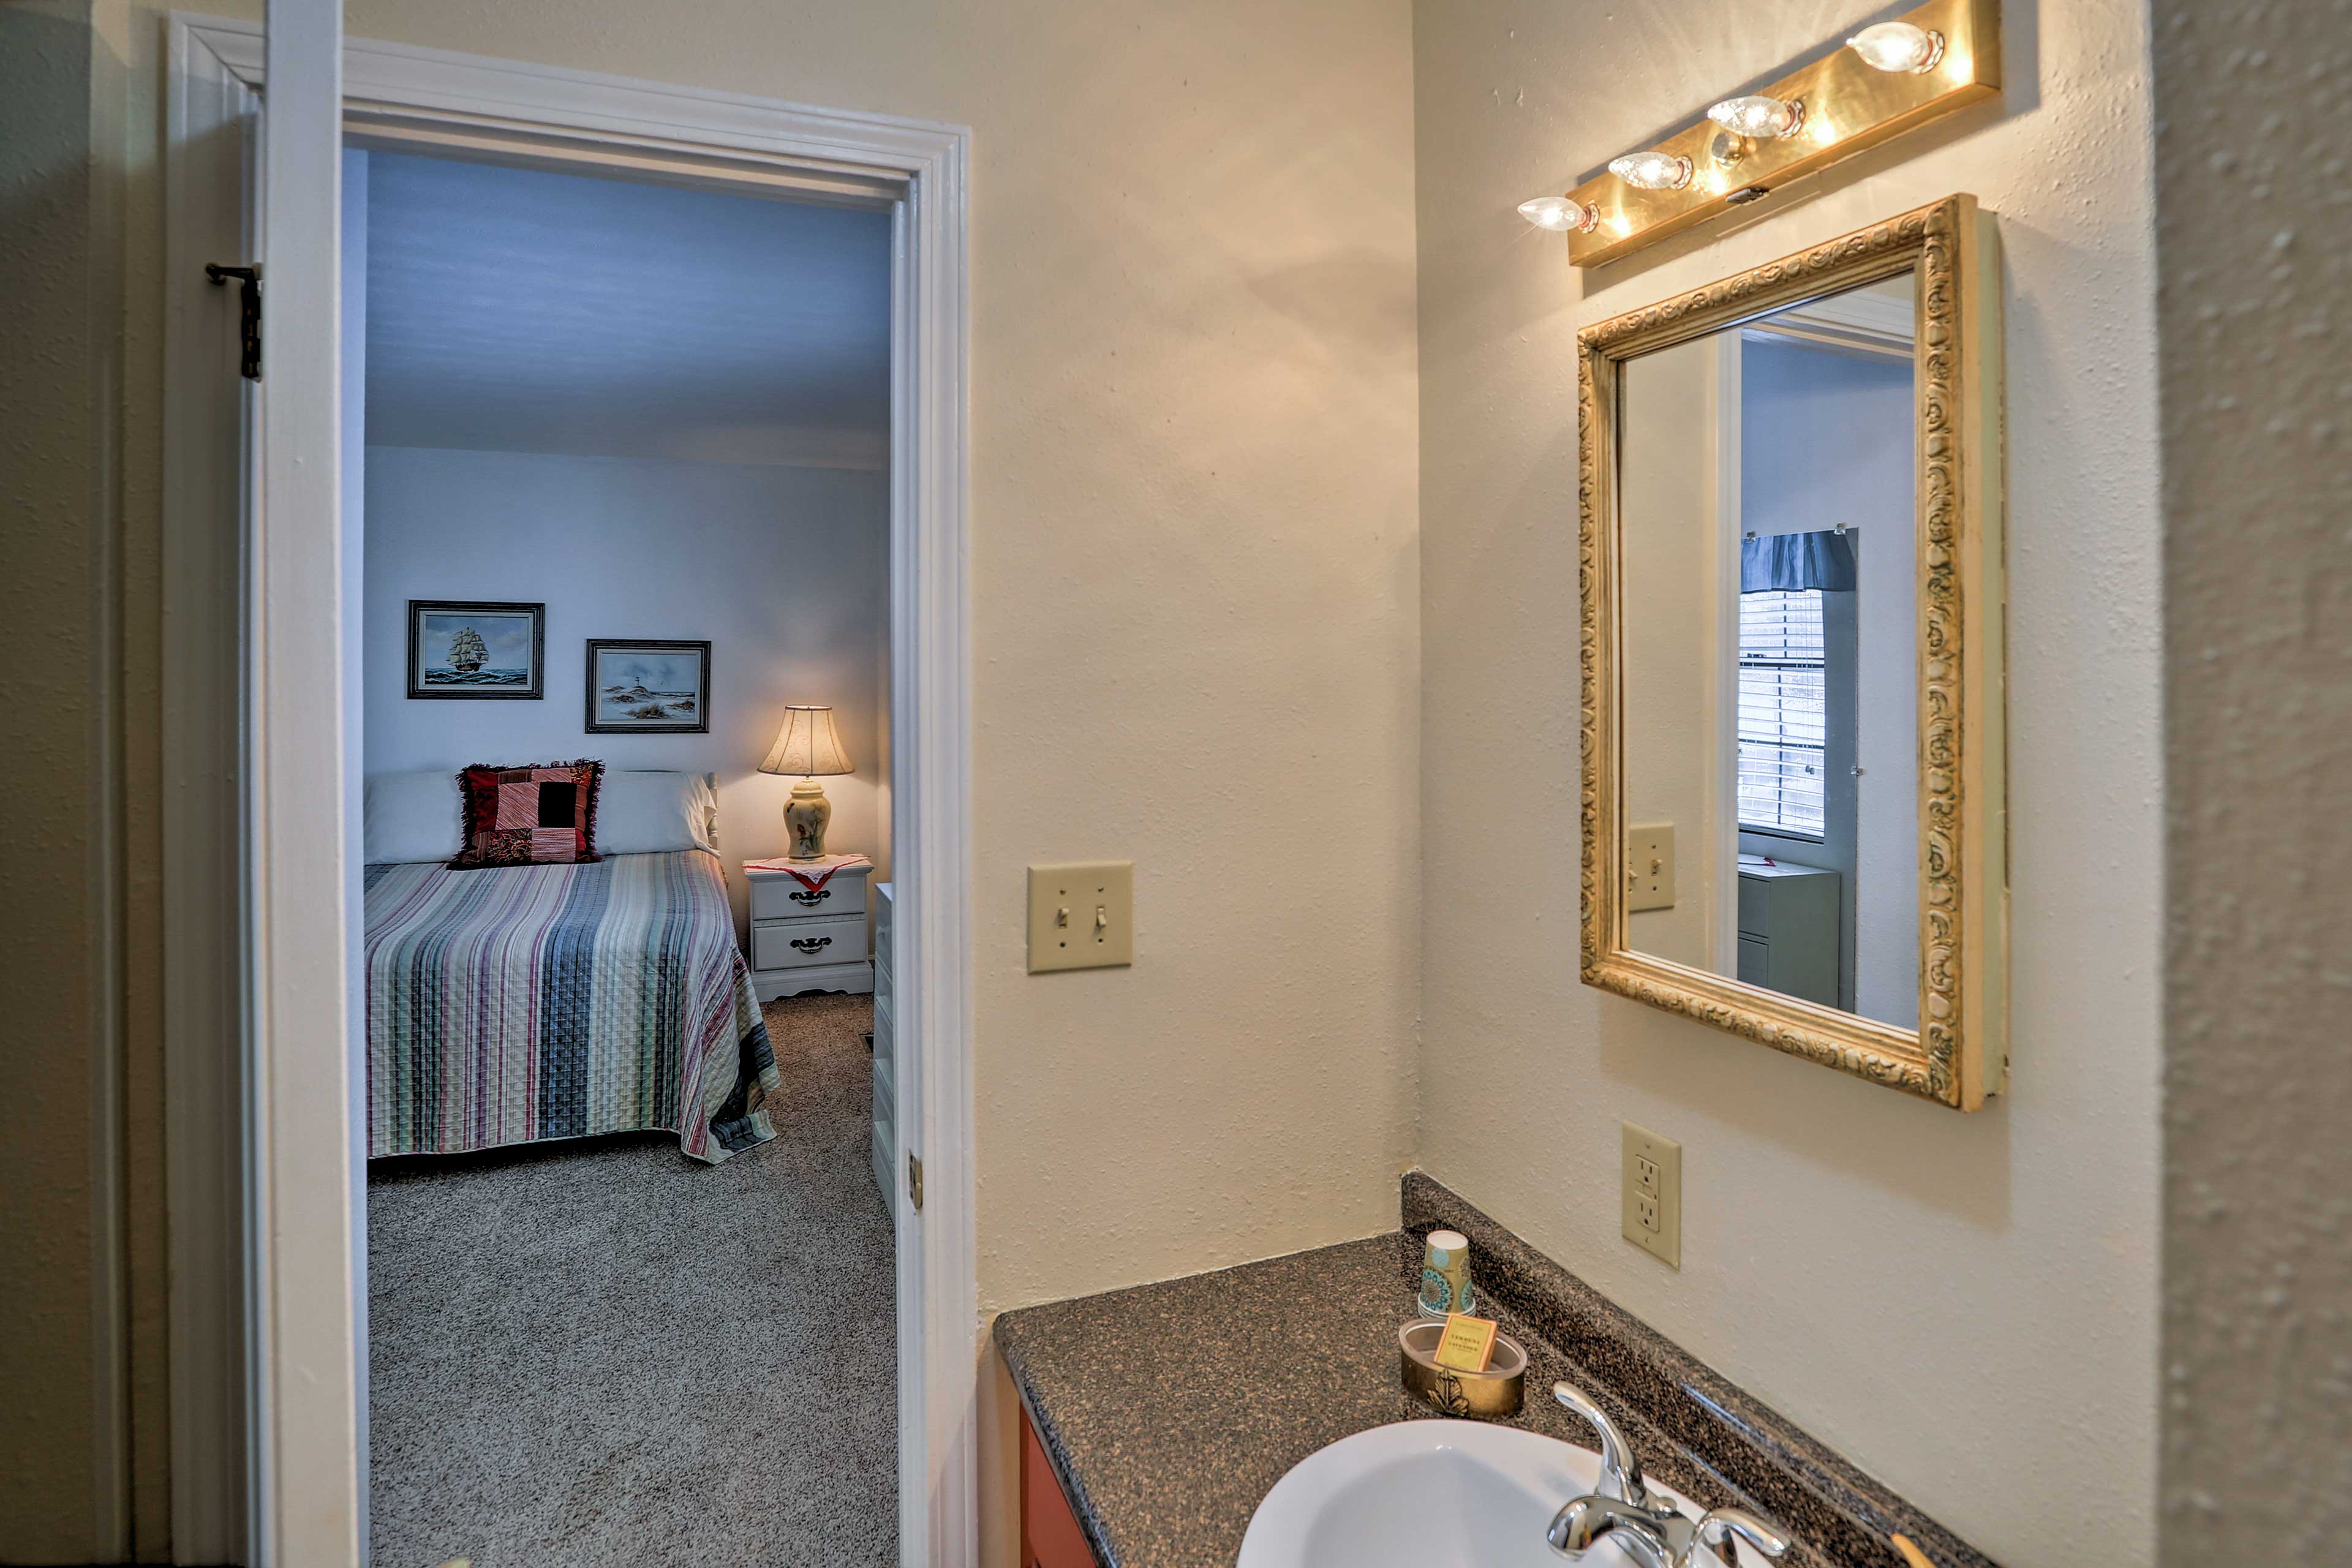 The full bathroom has a single sink, vanity mirror, and a stand-up shower.